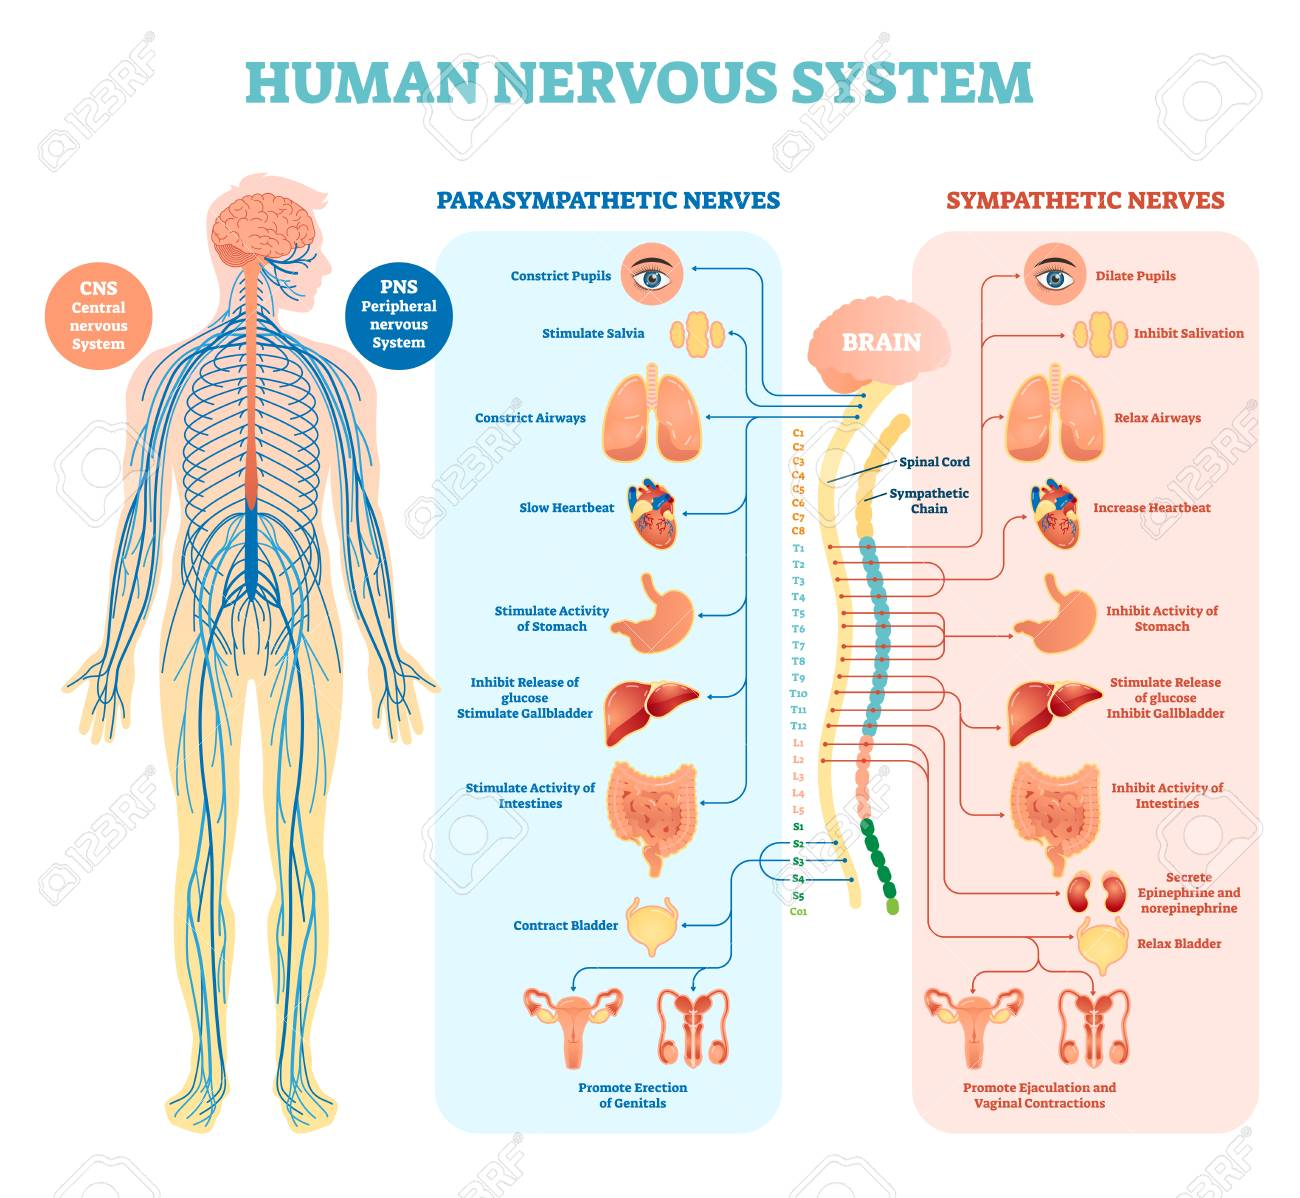 hight resolution of human nervous system medical vector illustration diagram with parasympathetic sympathetic nerves and all connected inner